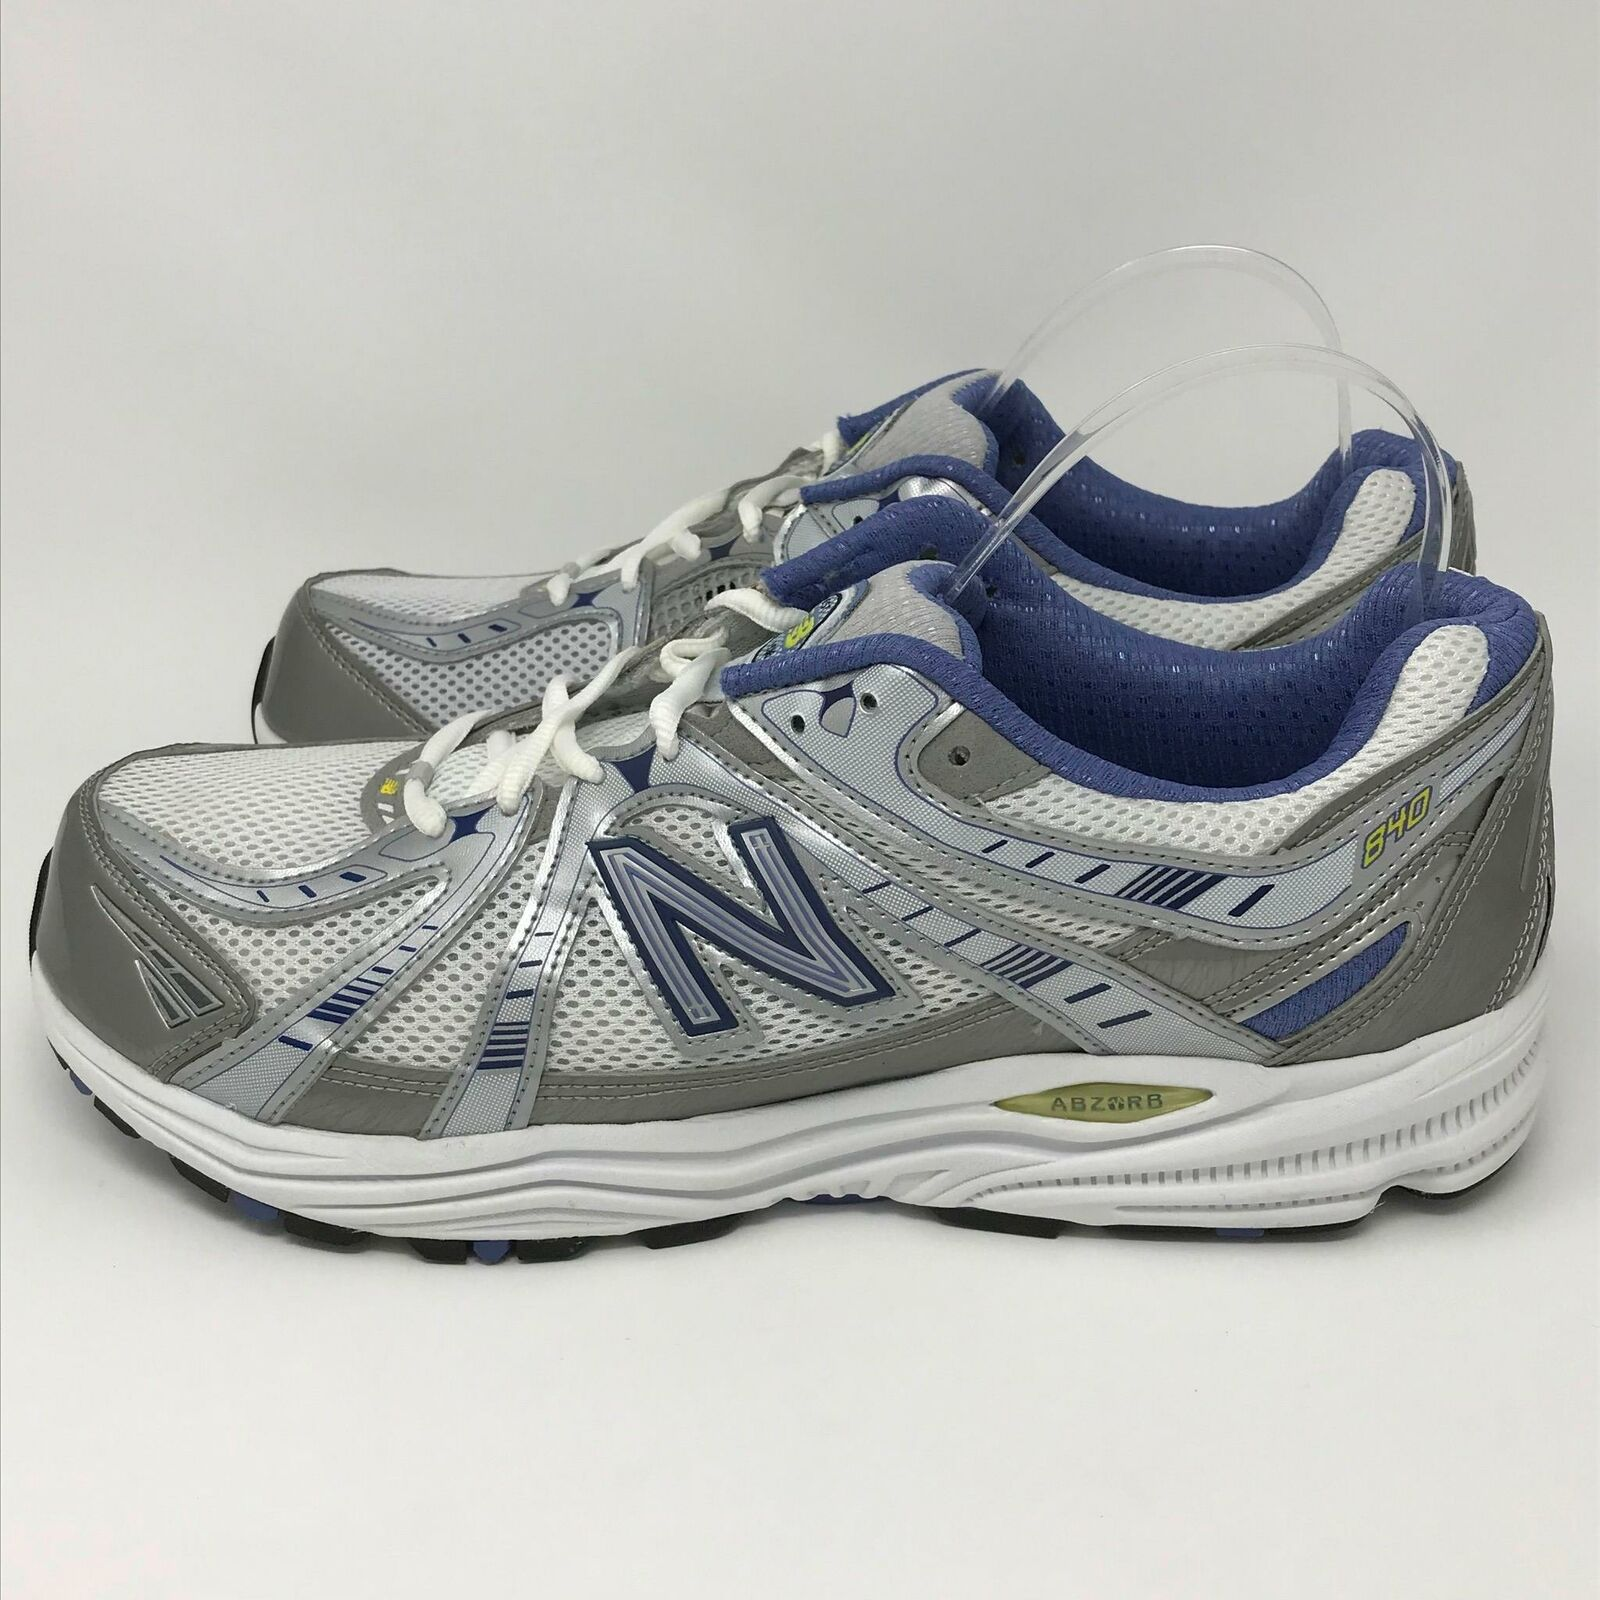 New Balance WR840WB Neutral Cushioning 840 Women's Running shoes Size  13 (2E)